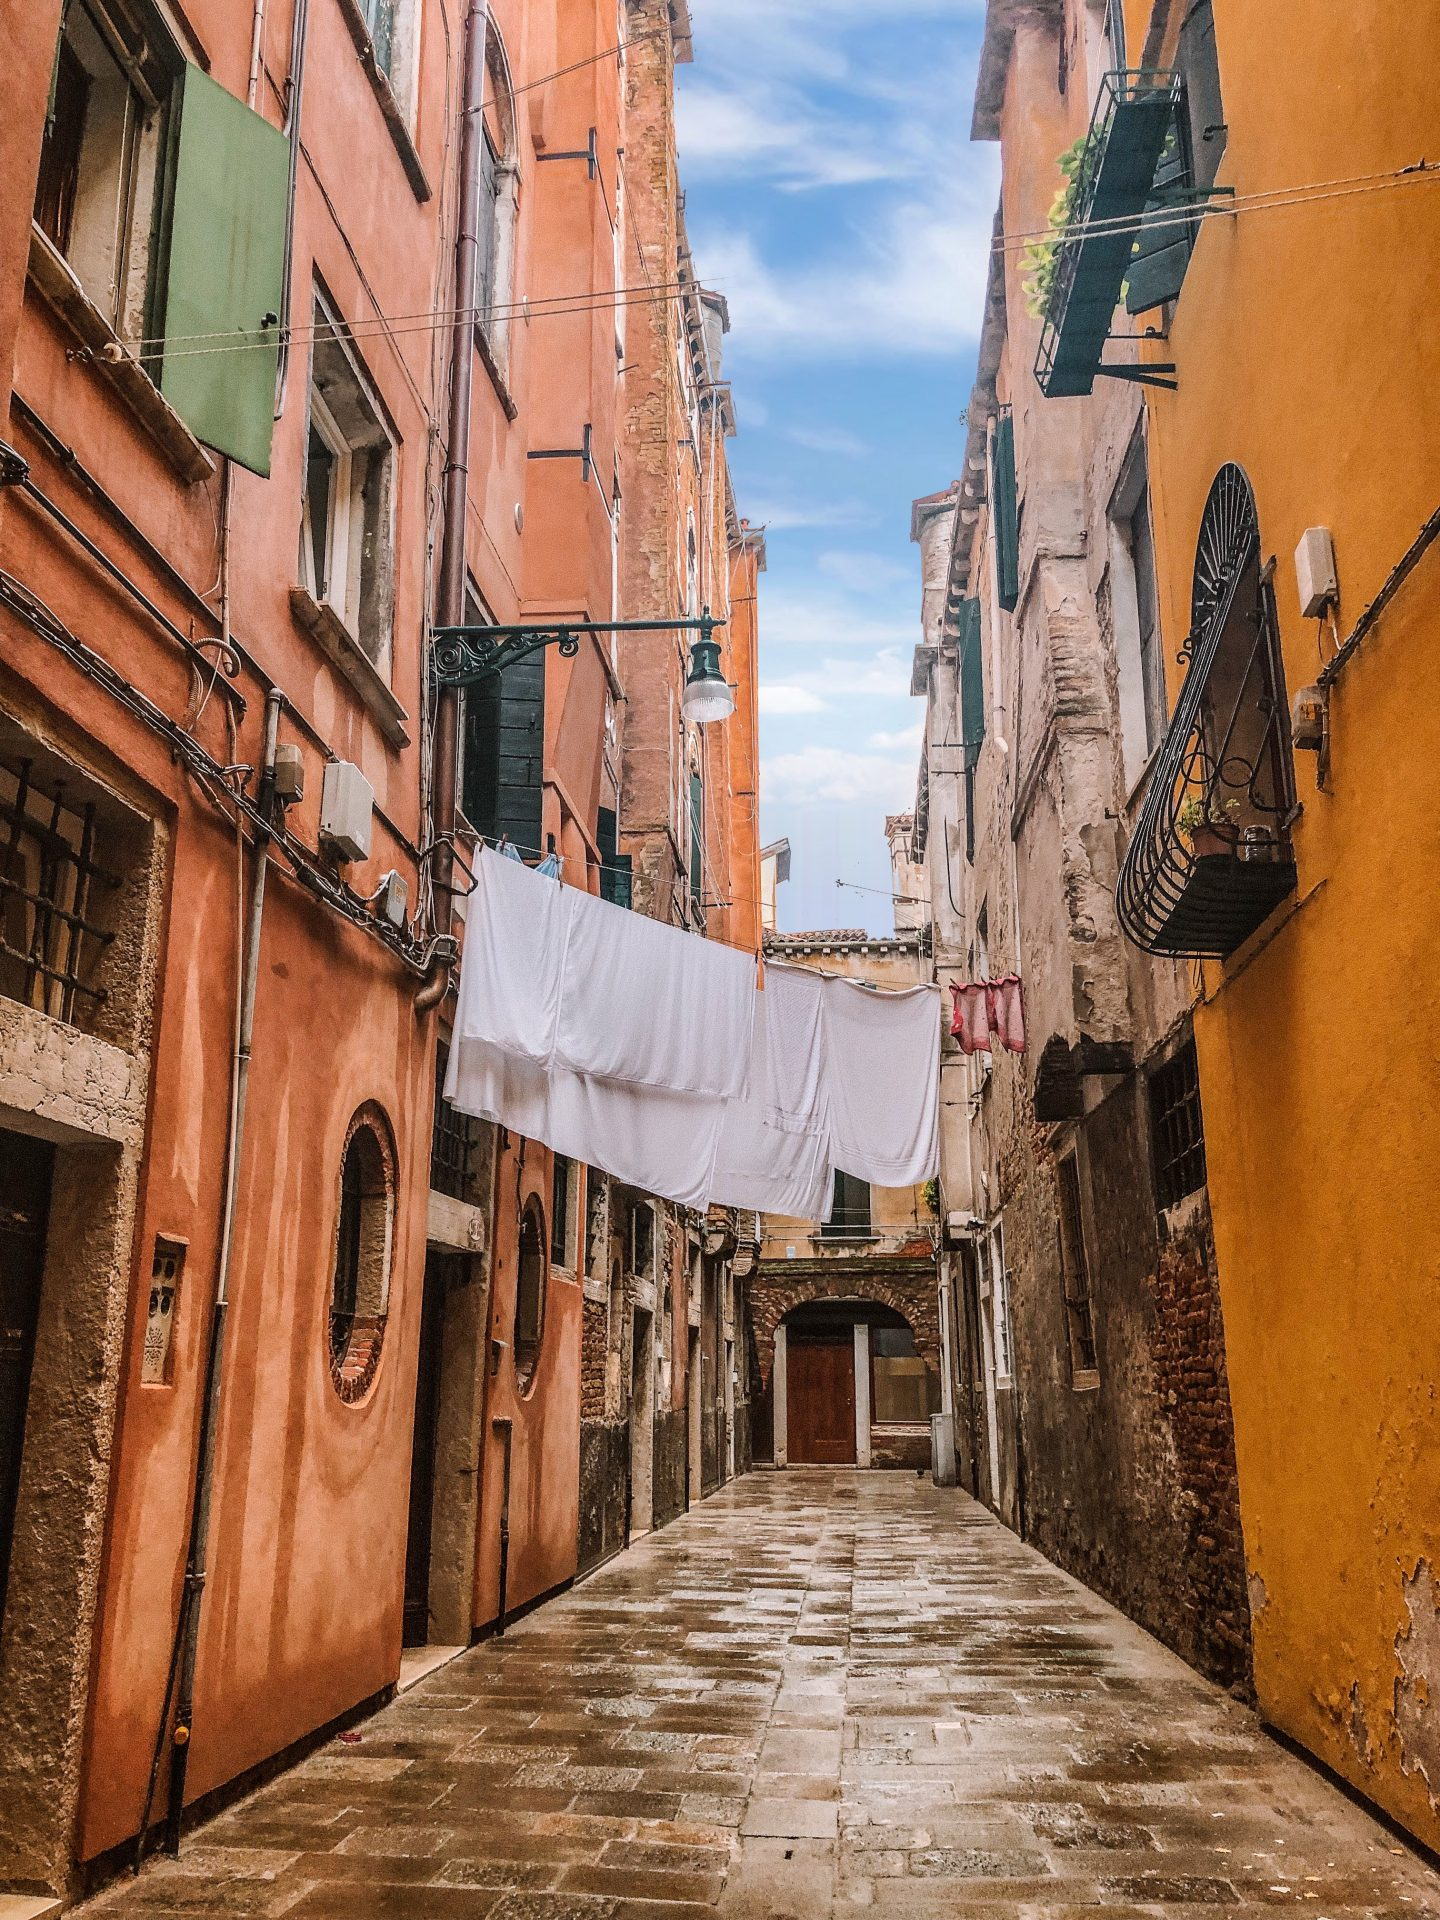 Laundry hanging over the street in Venice, Italy